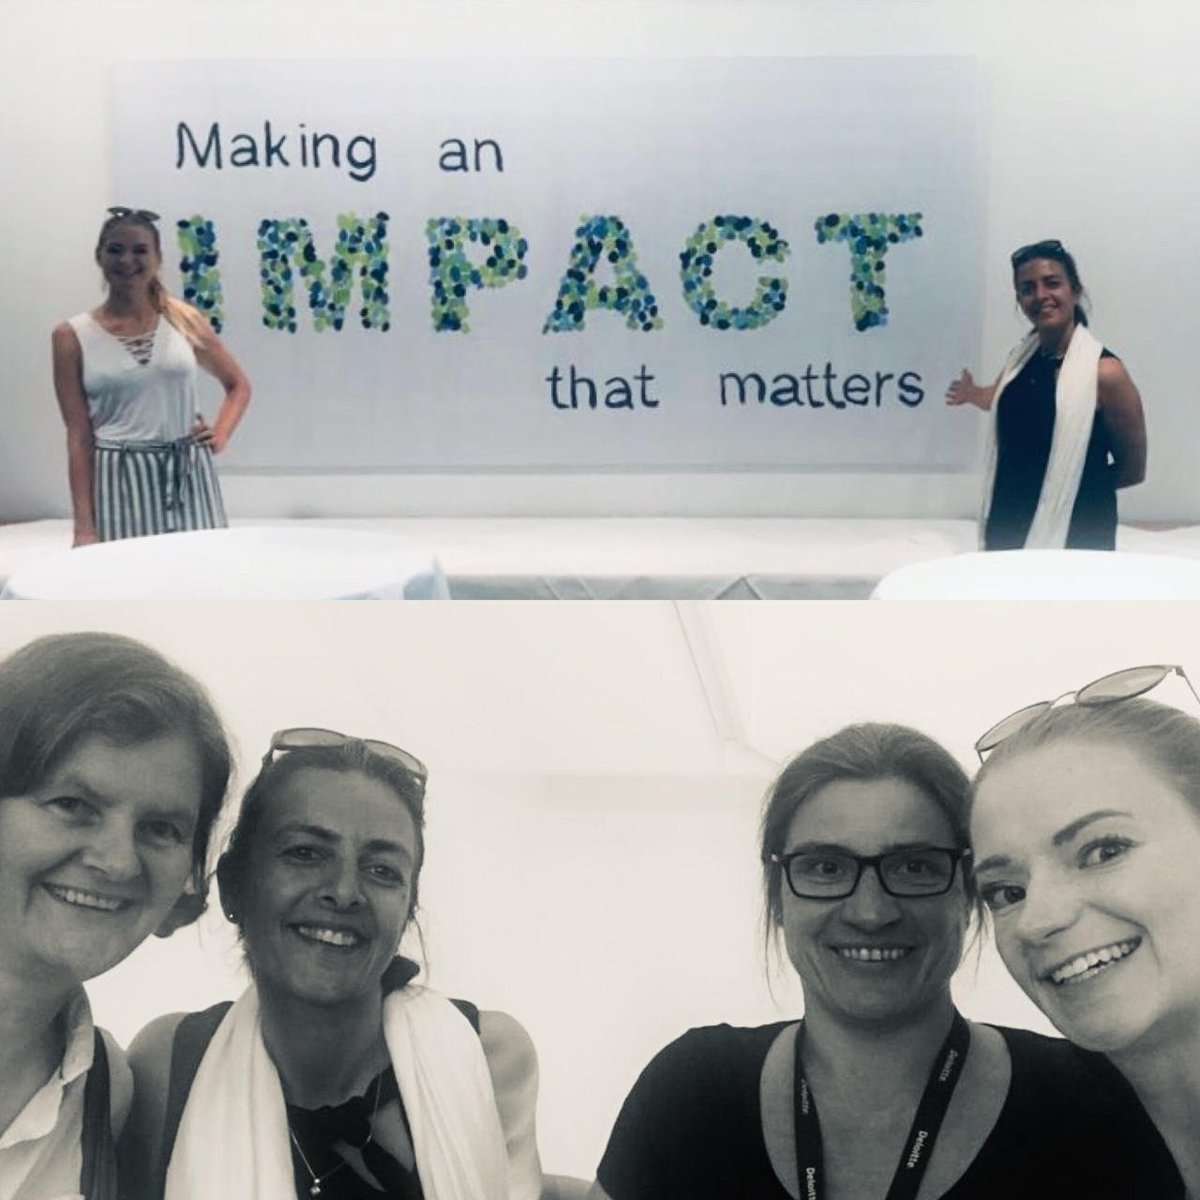 """Great series of initiatives by #ebbfmember Moneshia zu Eltz """"we are designing our next @INSEADAlumni event at @Deloitte Munich focusing on #futureoffood . Looking at how to#reducewaste with #consumerpower to impact #foodvaluechain """" https://lnkd.in/eQbZxRW"""